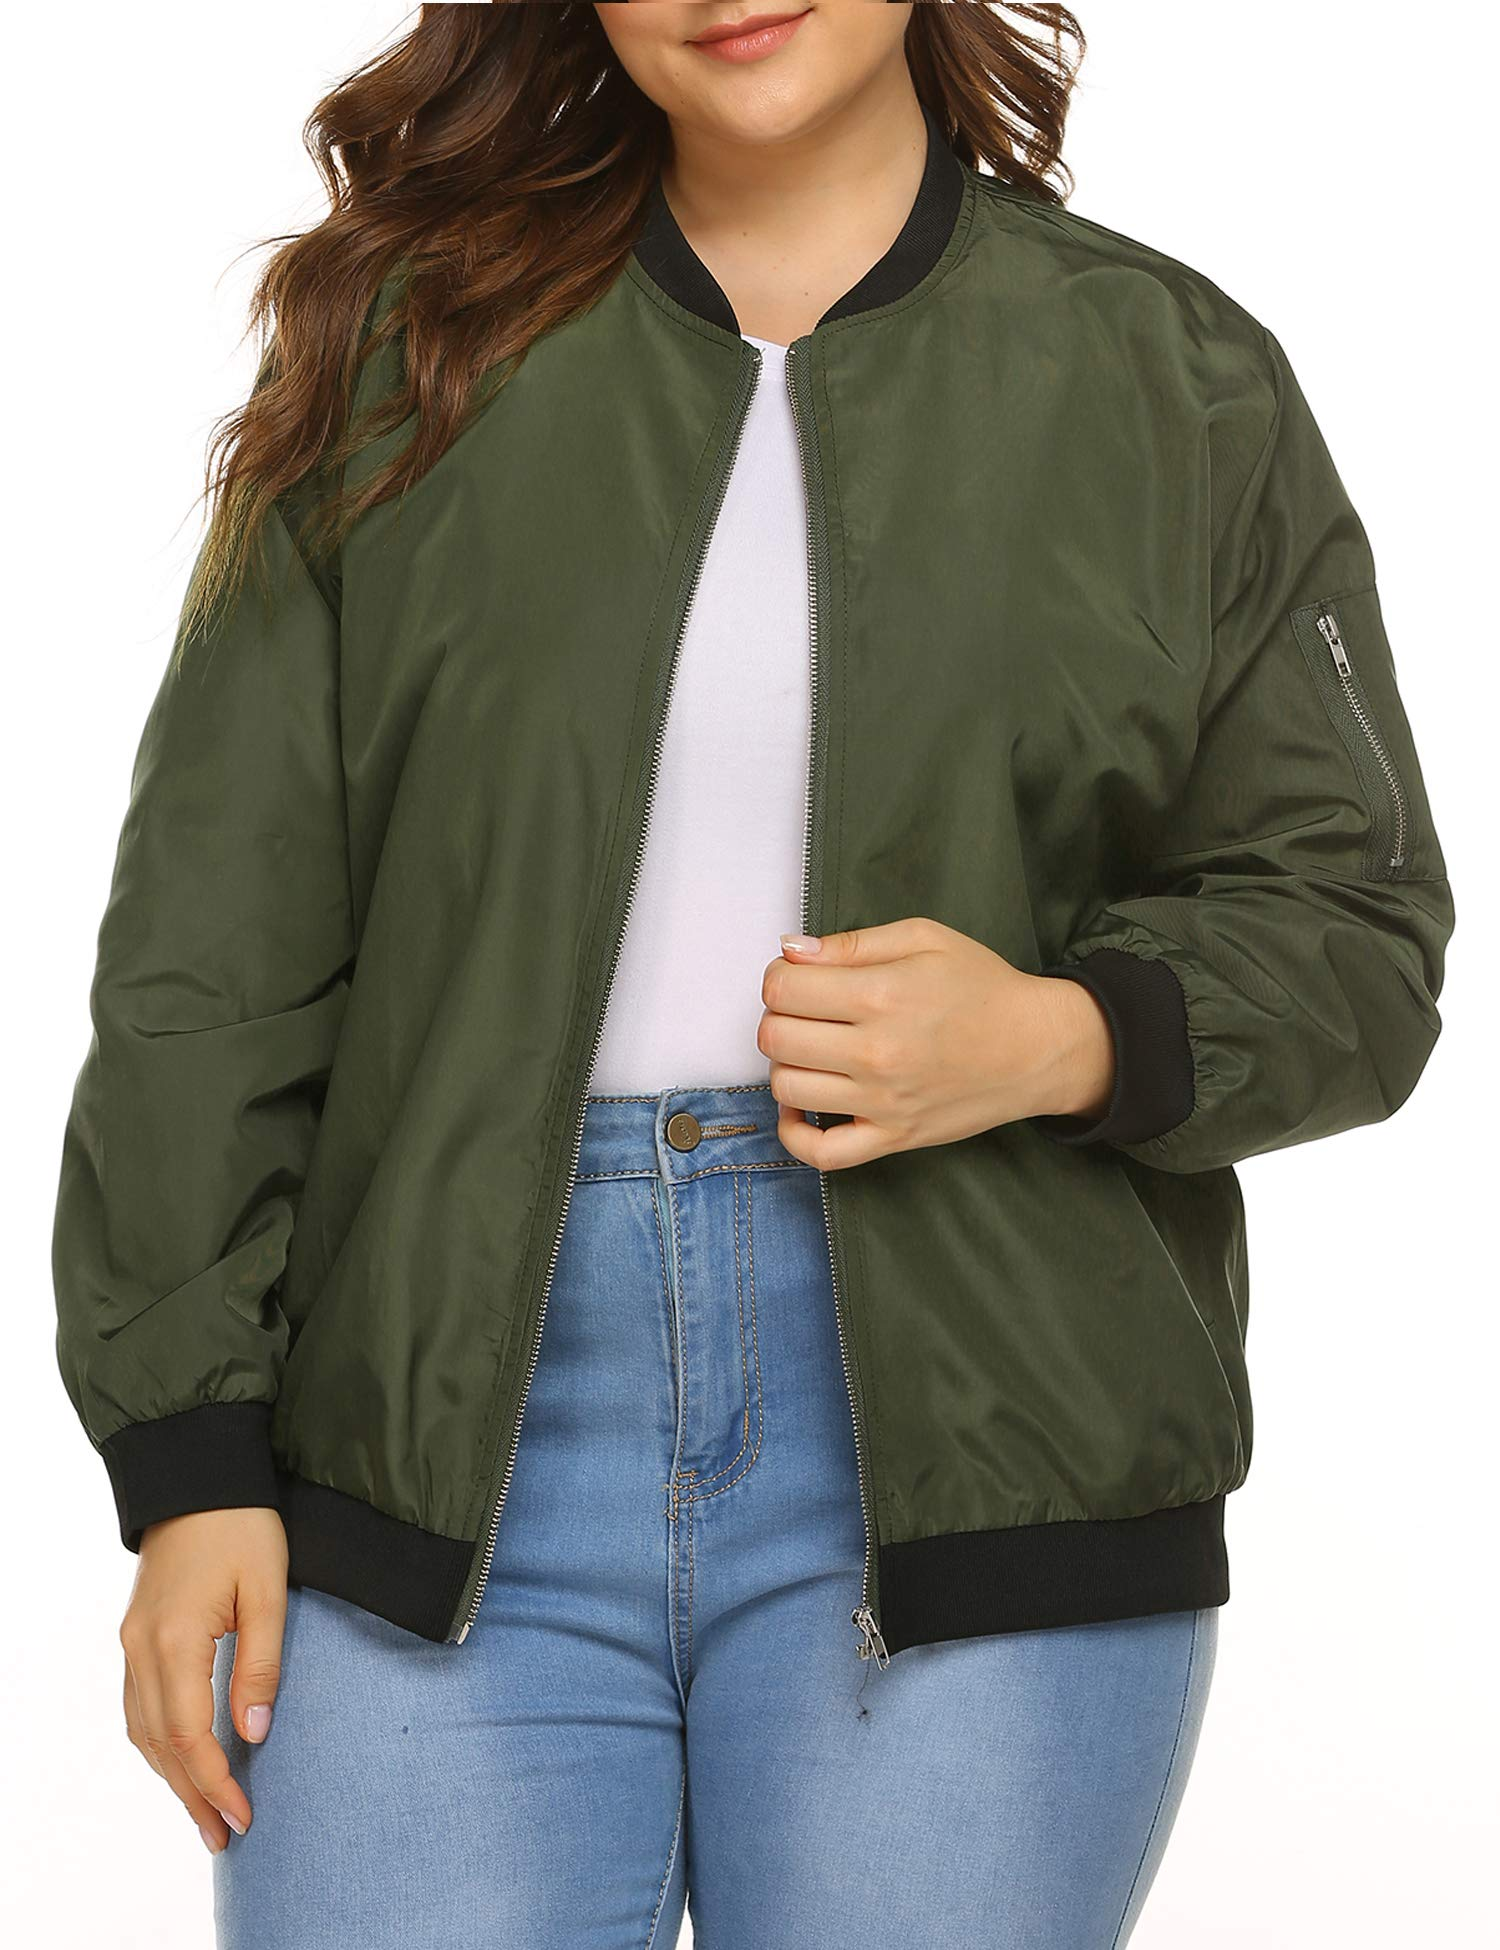 IN'VOLAND Womens Jacket Plus Size Bomber Jackets Lightweight with Pockets Zip Up Quilted Casual Coat Outwear Army Green by IN'VOLAND